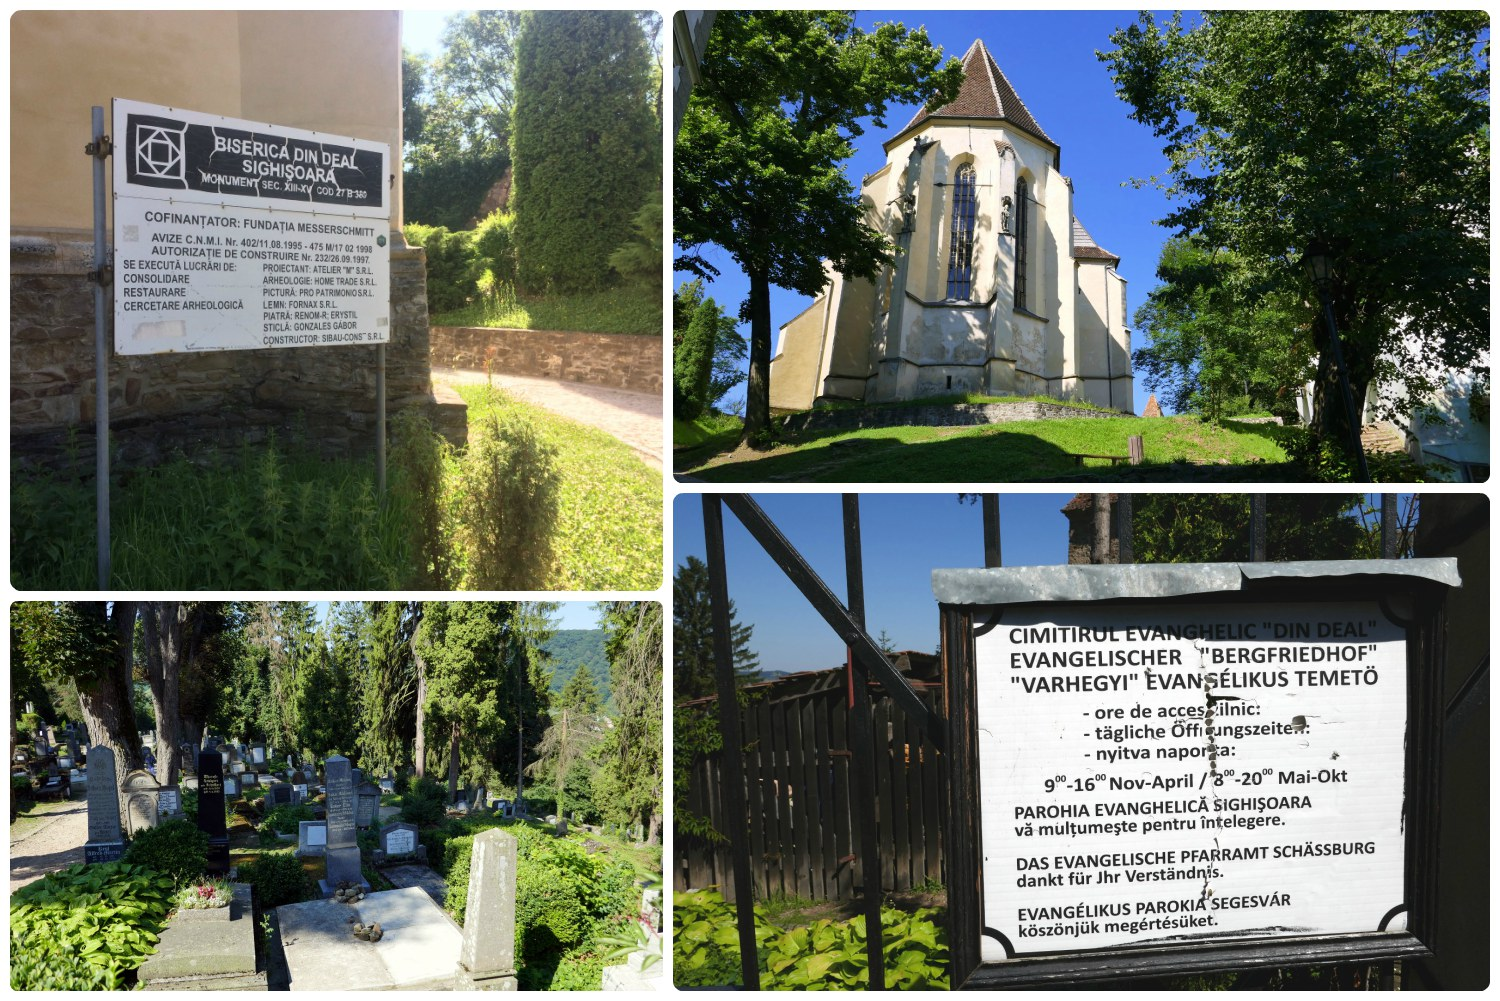 At the top of the hill in the Sighisoara Citadel, sits the Church on the Hill. We climbed the Scholars' Stairs to get to the church and enjoyed the views from the top. When visiting, don't forget to walk through the old cemetery directly across from the church entrance.